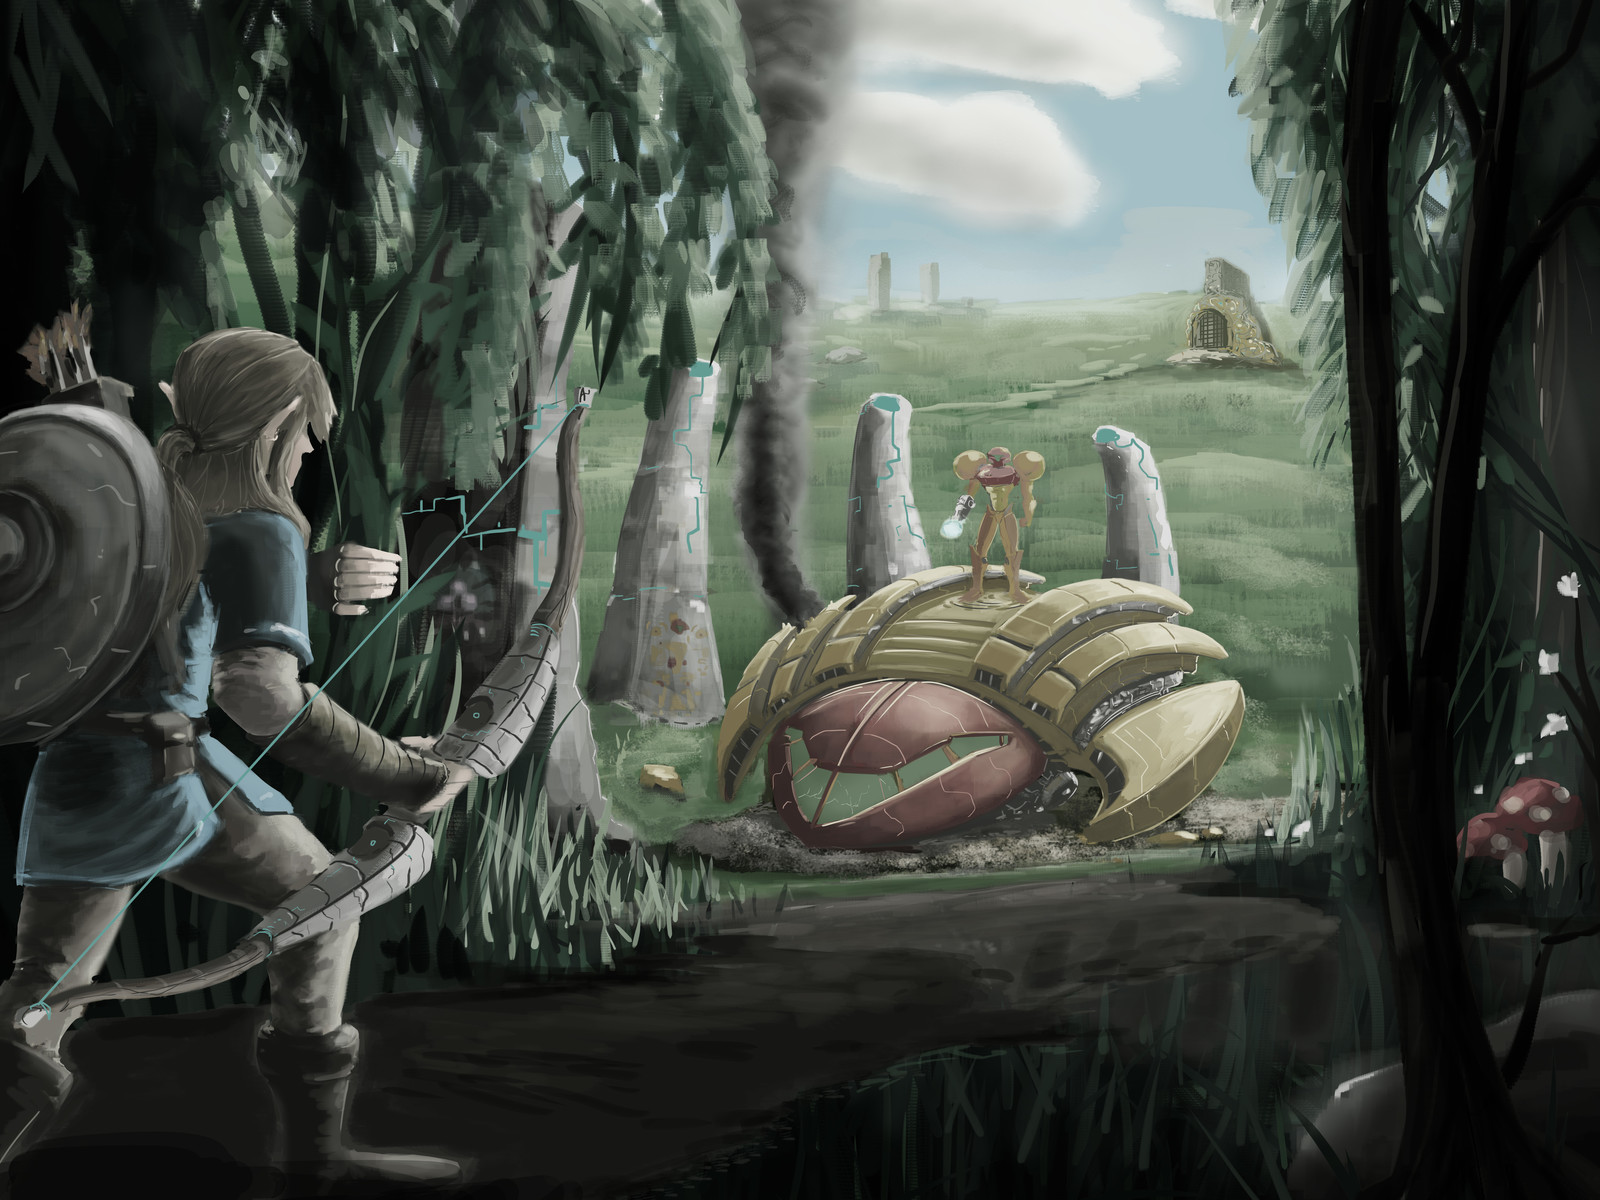 Link and Samus